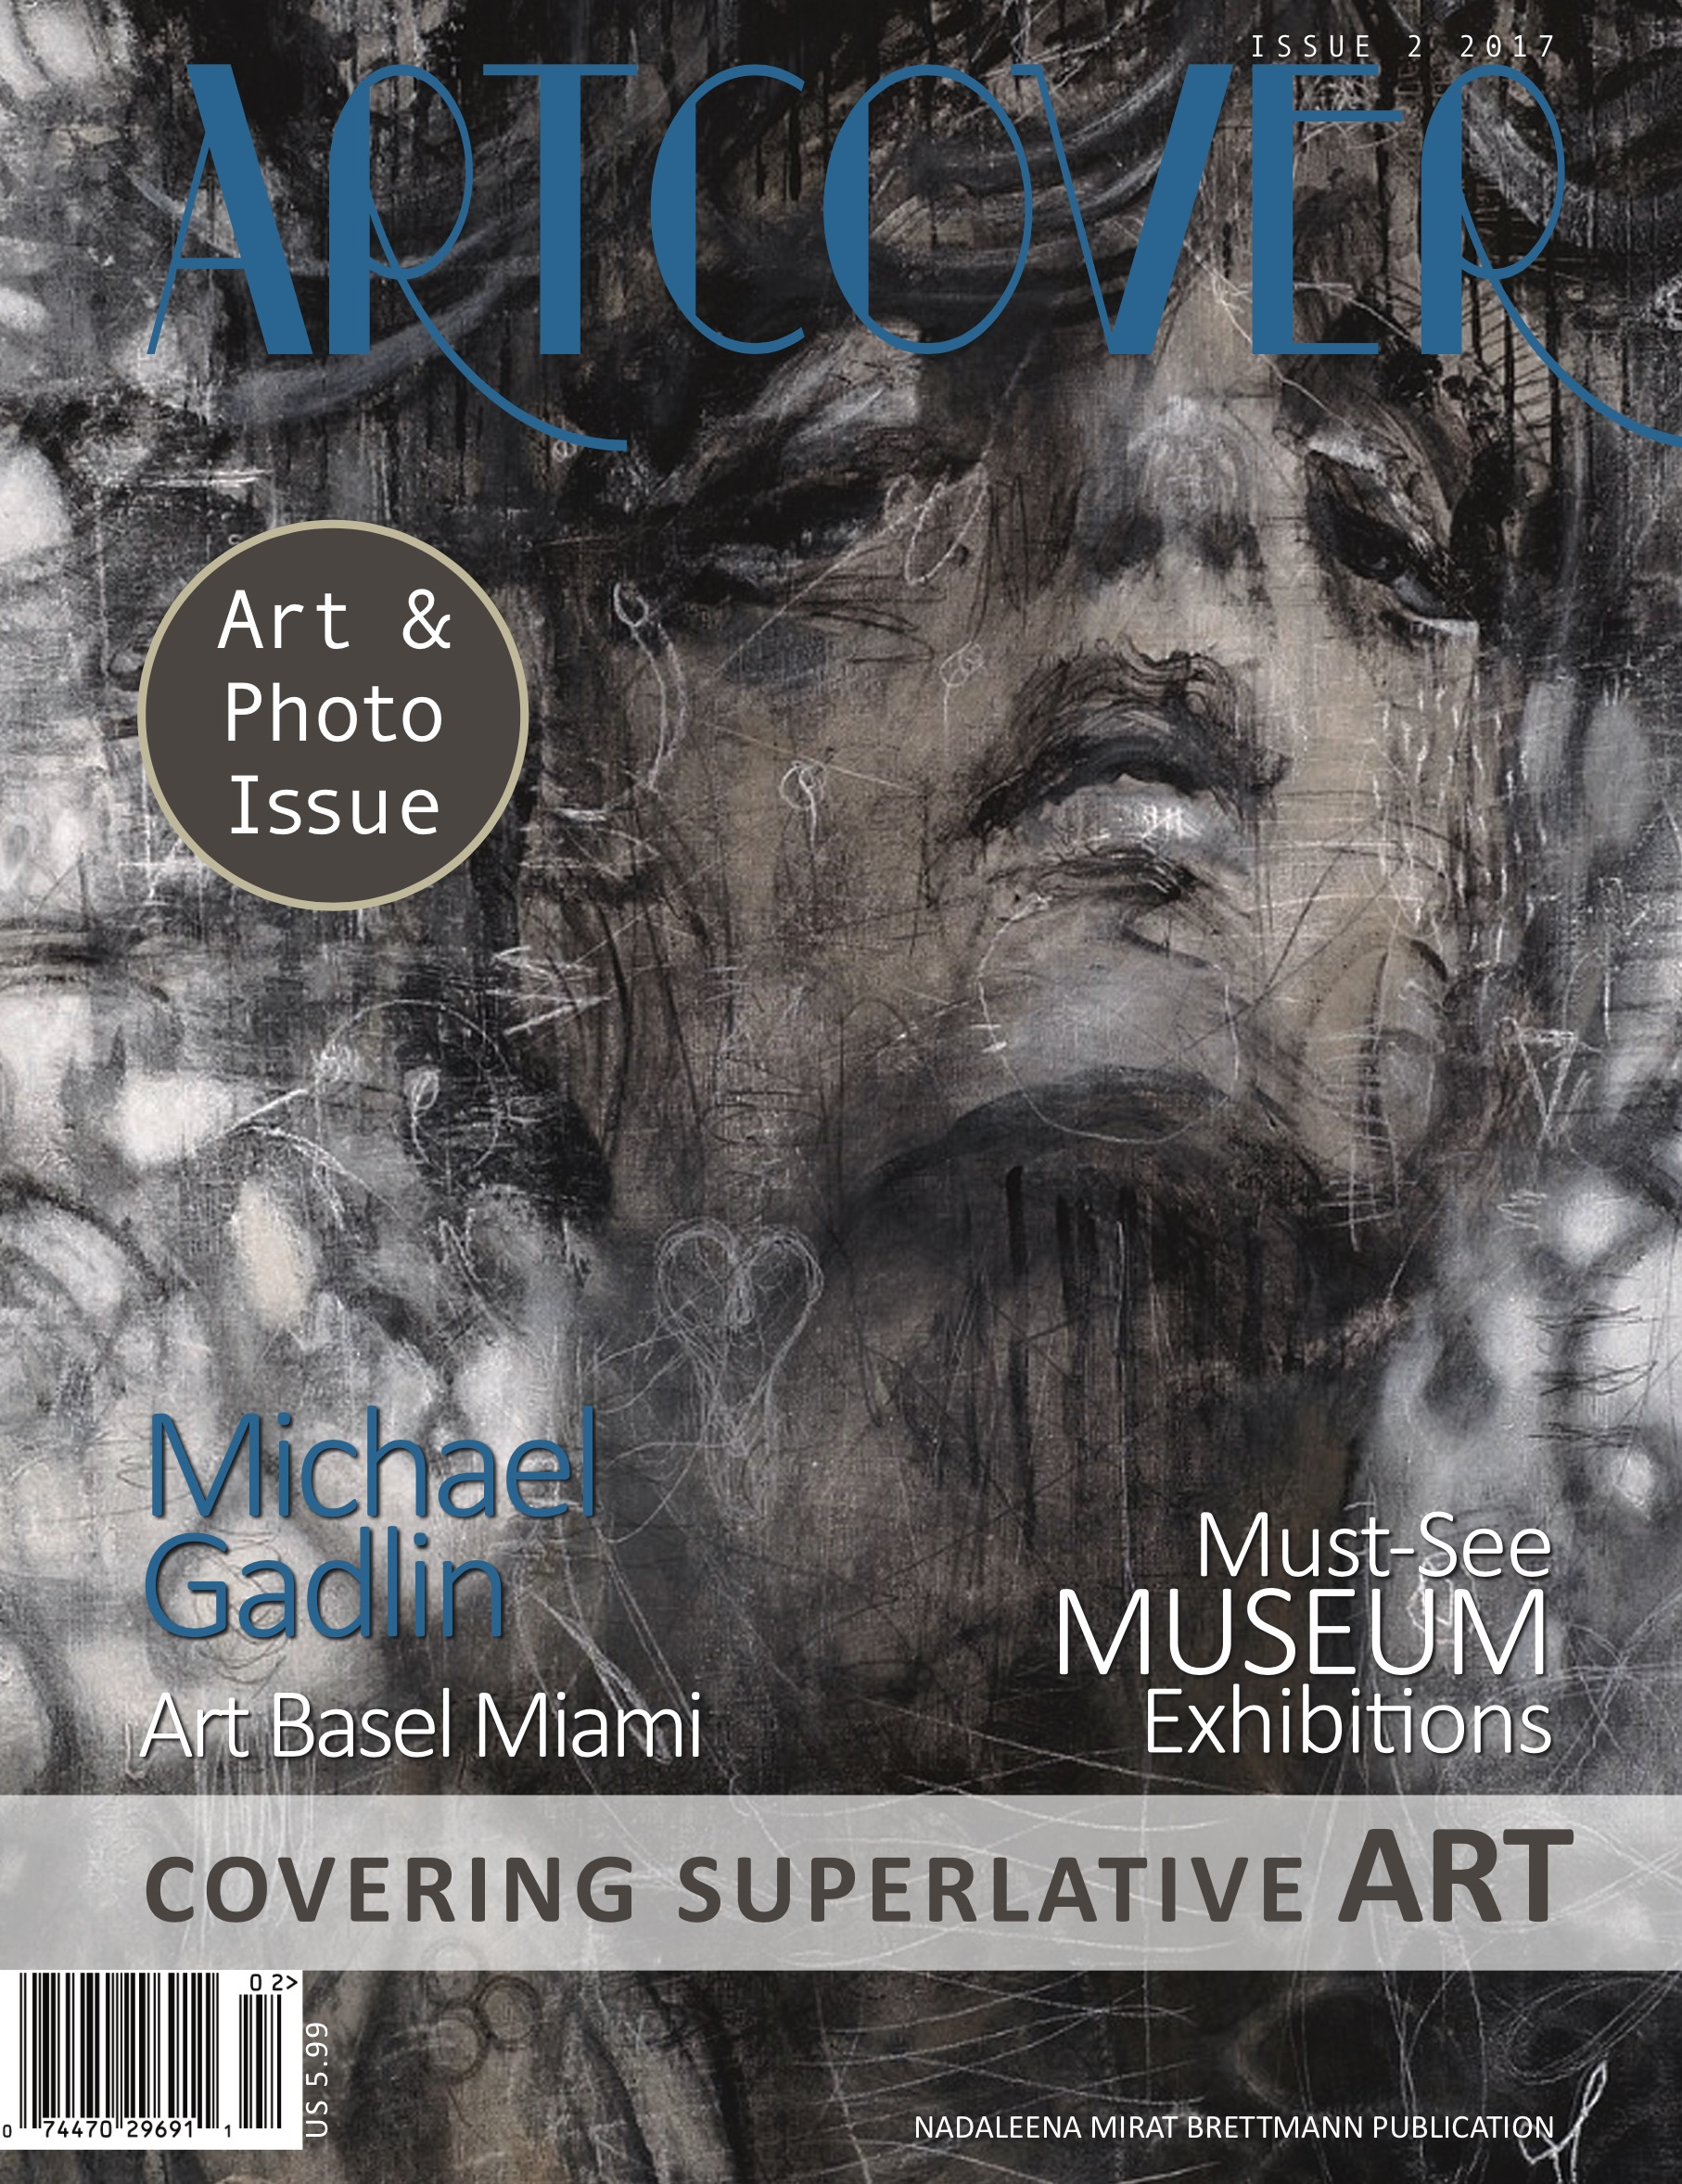 Cover and Feature, ISSUE No.2 2017